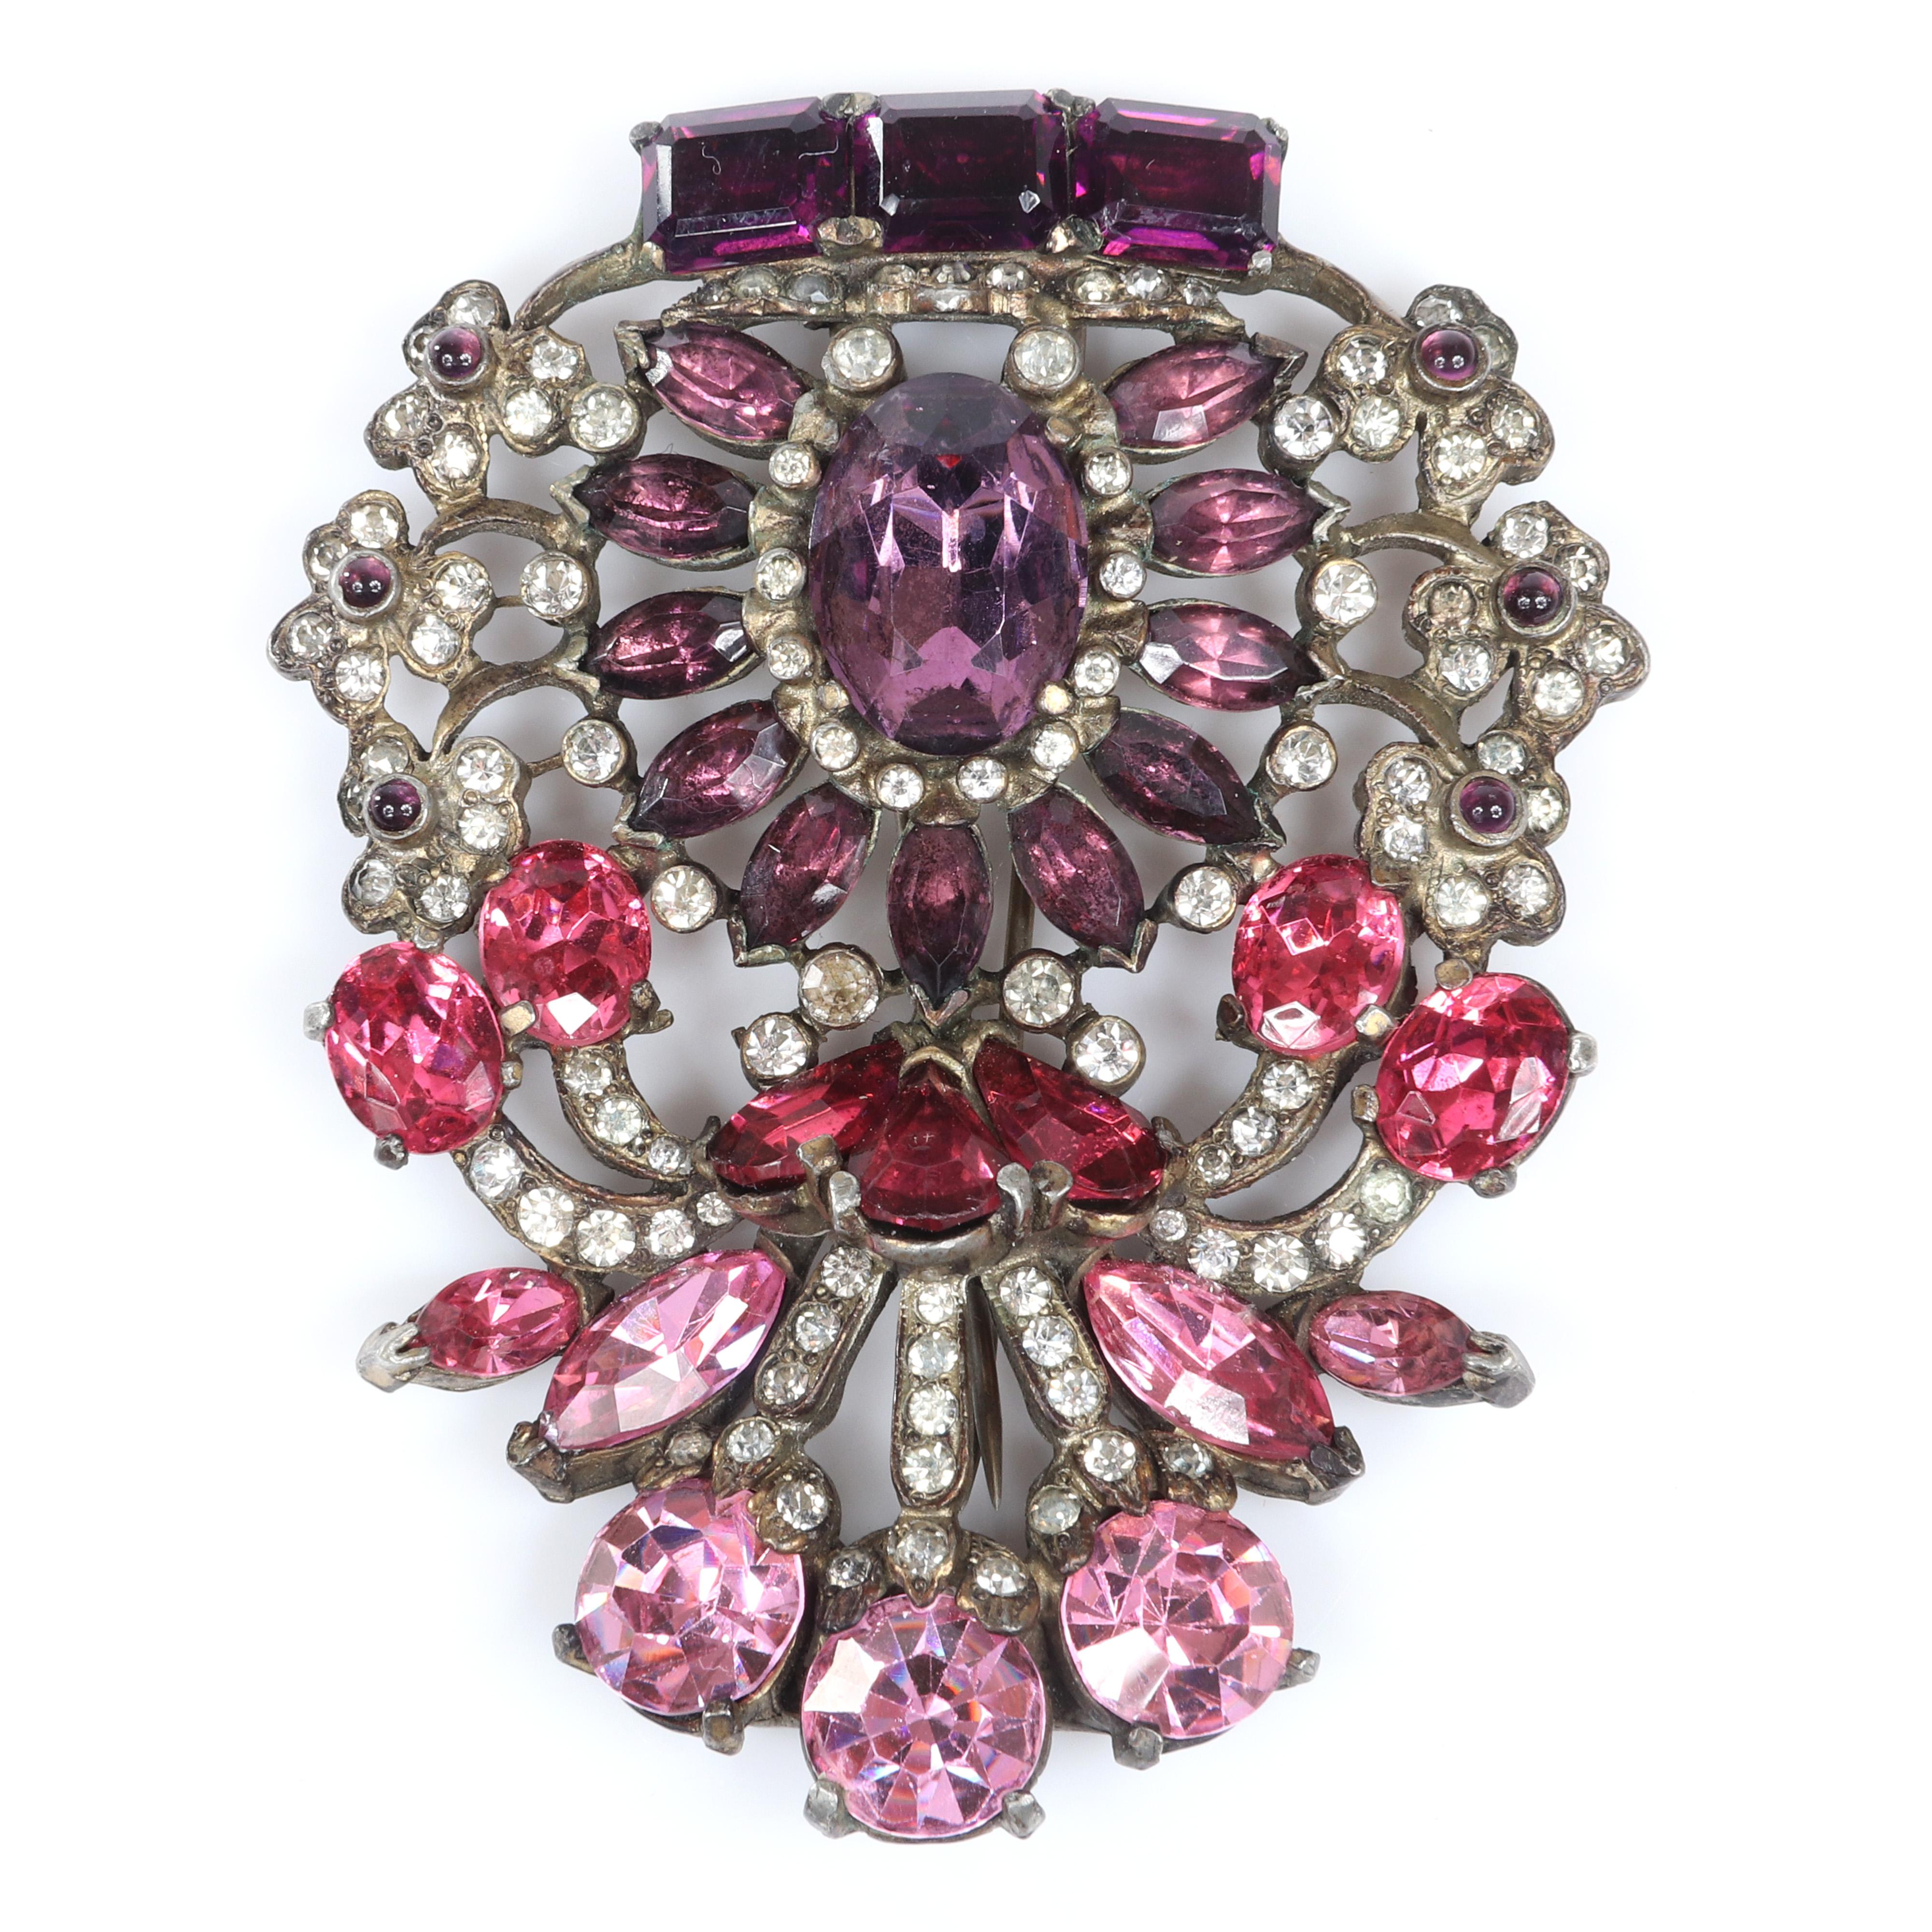 "Eisenberg Original sterling vermeil brooch with multi-hued pink blossom crystals in various sizes and cuts interspersed with bezel-set clear rhinestones, mid 1940s. 3 3/8"" x 2 3/4"""